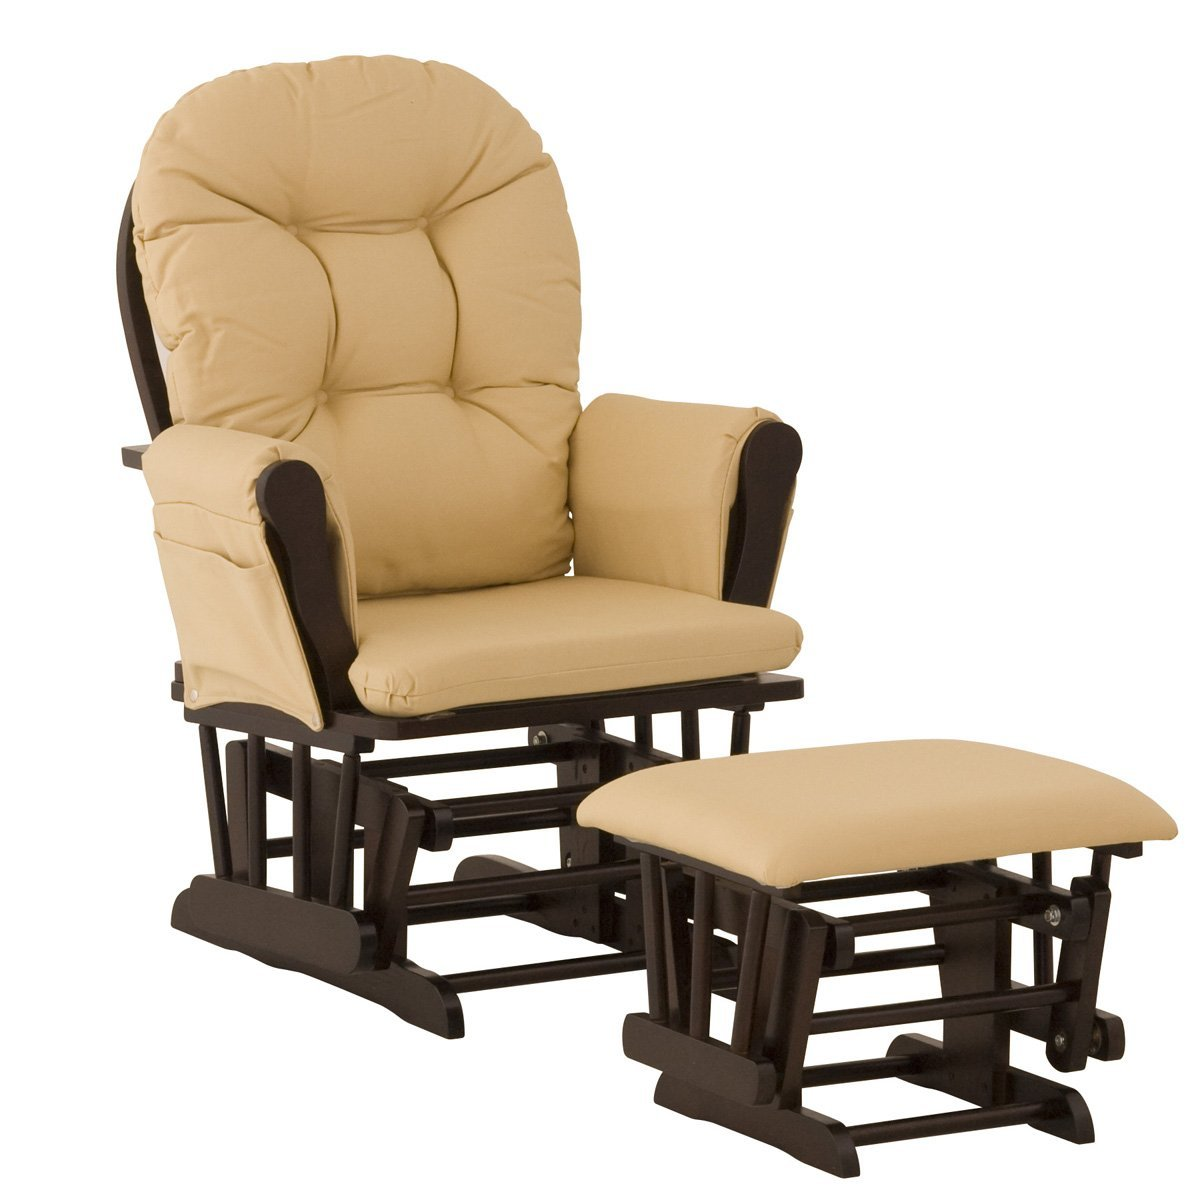 Image of: Brown Glider Rocking Chairs